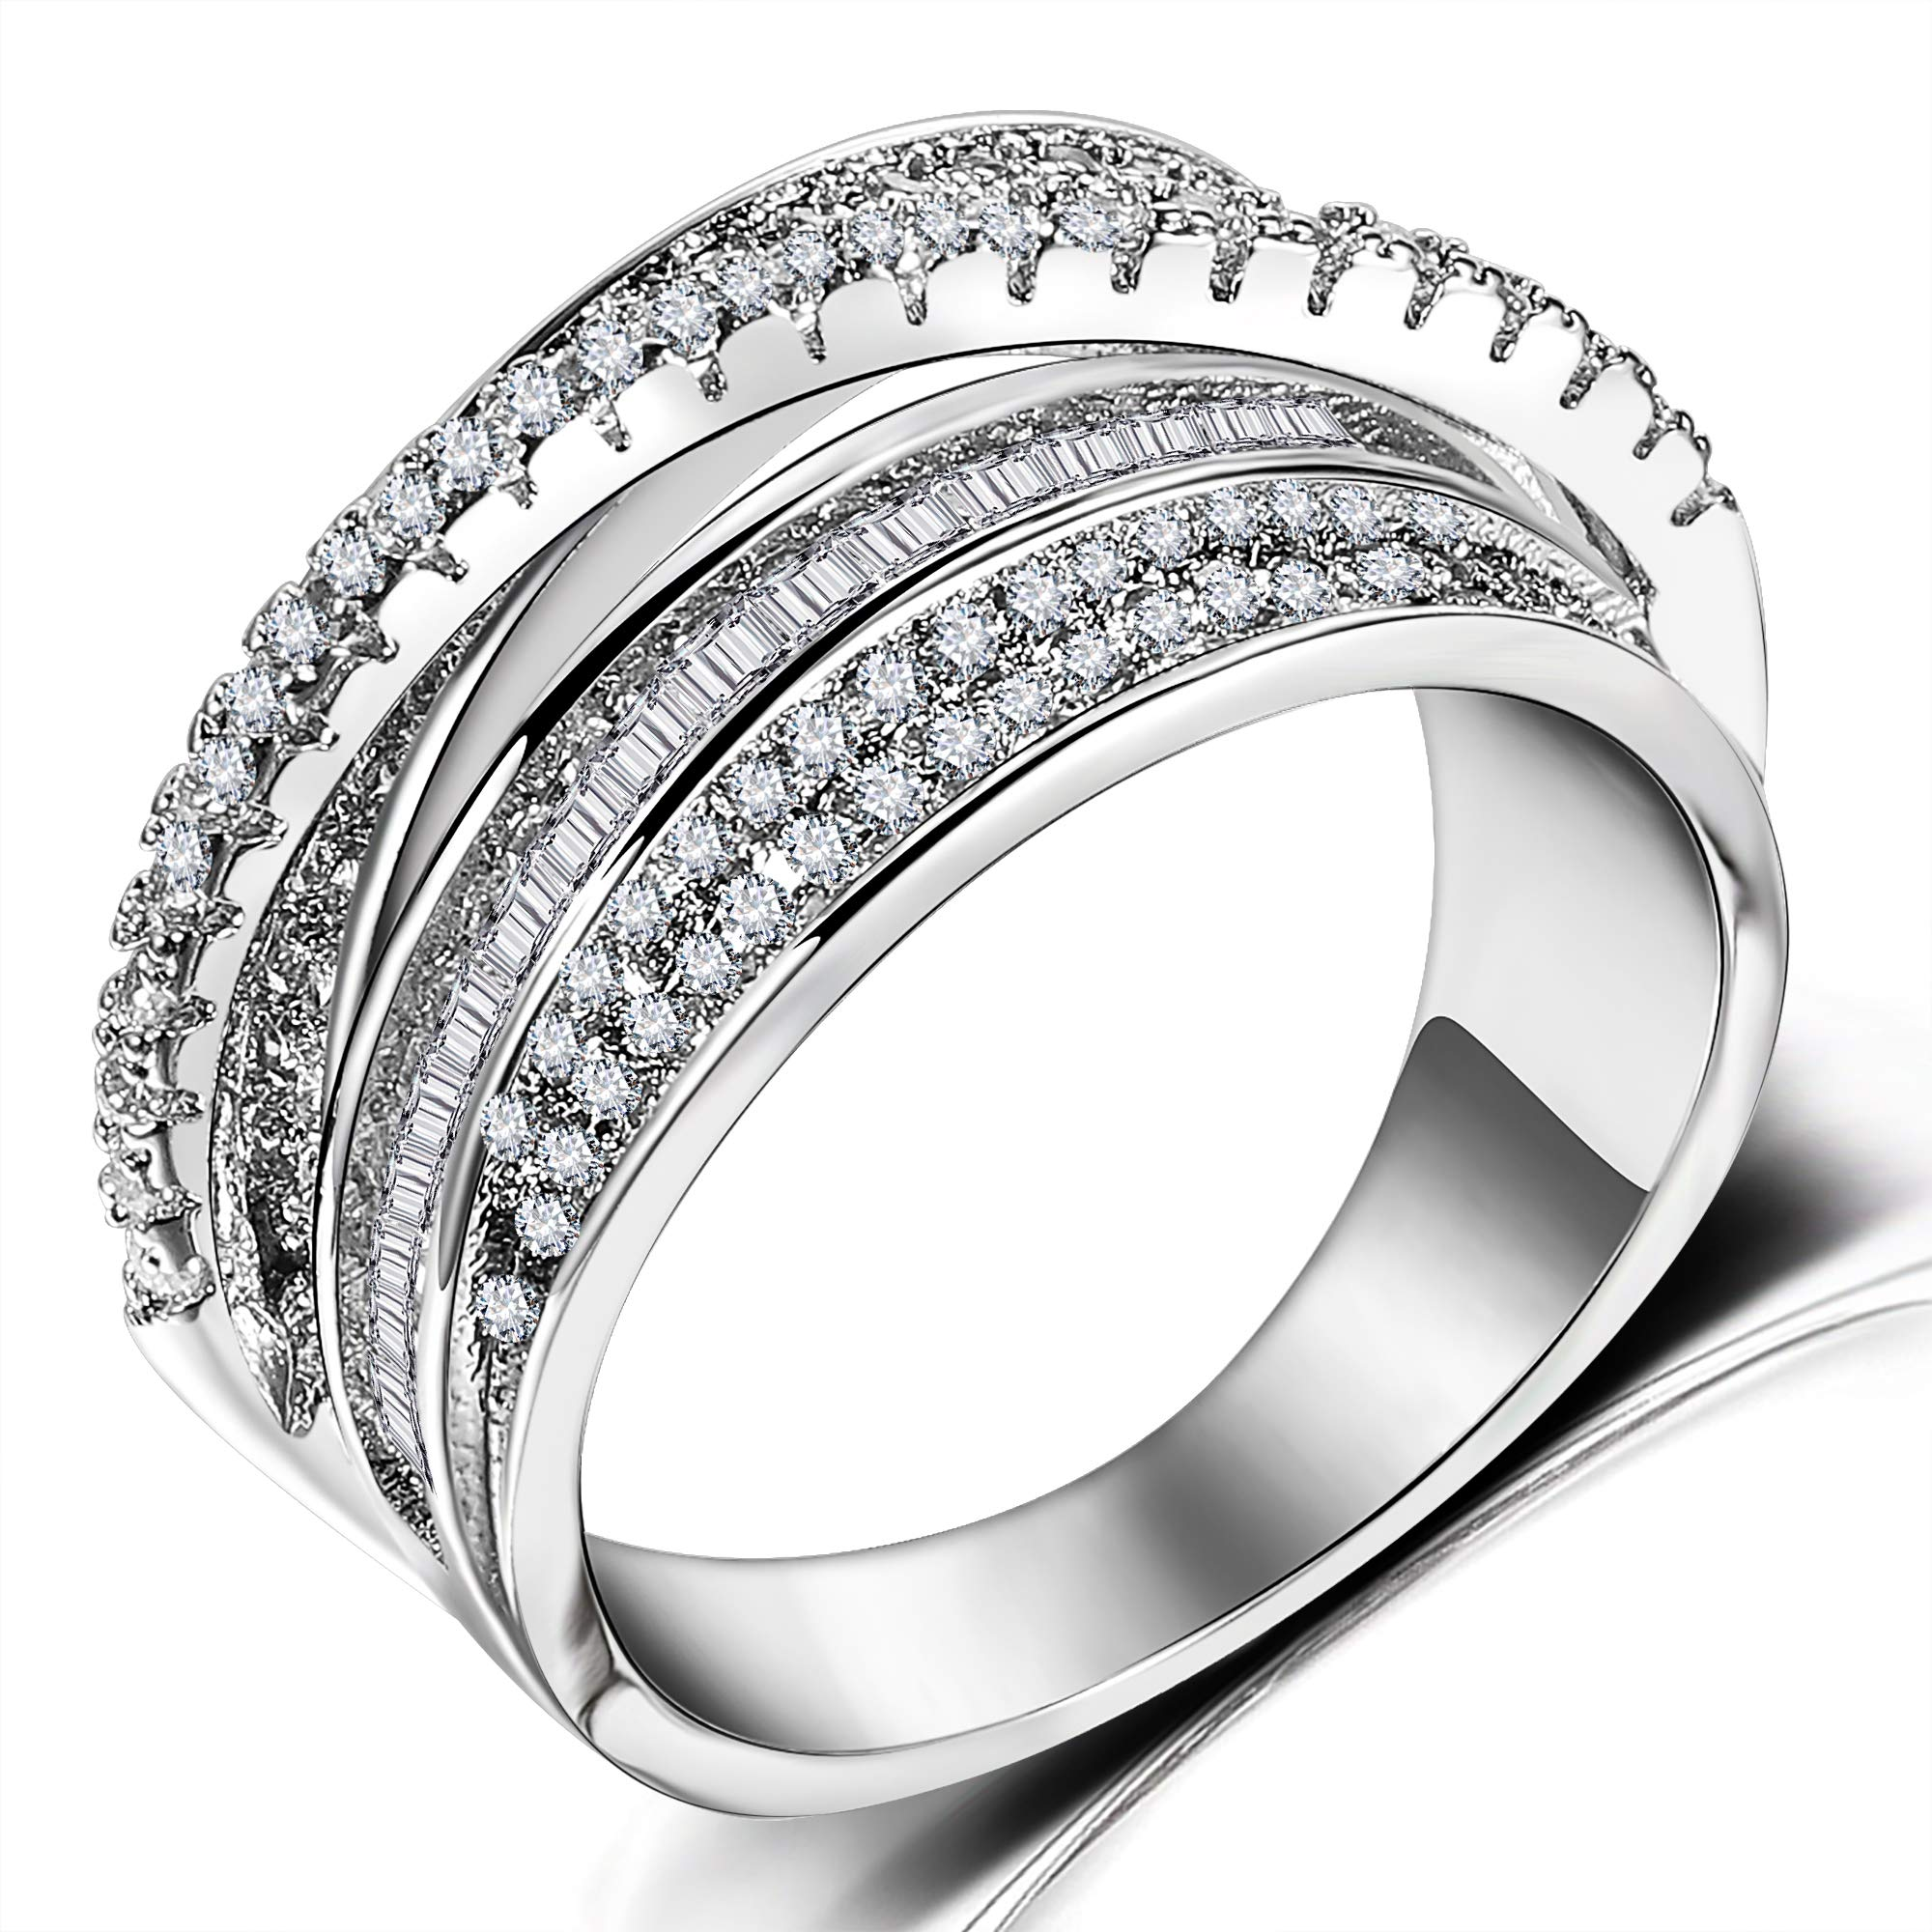 Rhodium Plated Crossover Statement Ring - Intertwined Criss Cross Cubic Zirconia Hollow Wide Band Rings for Women